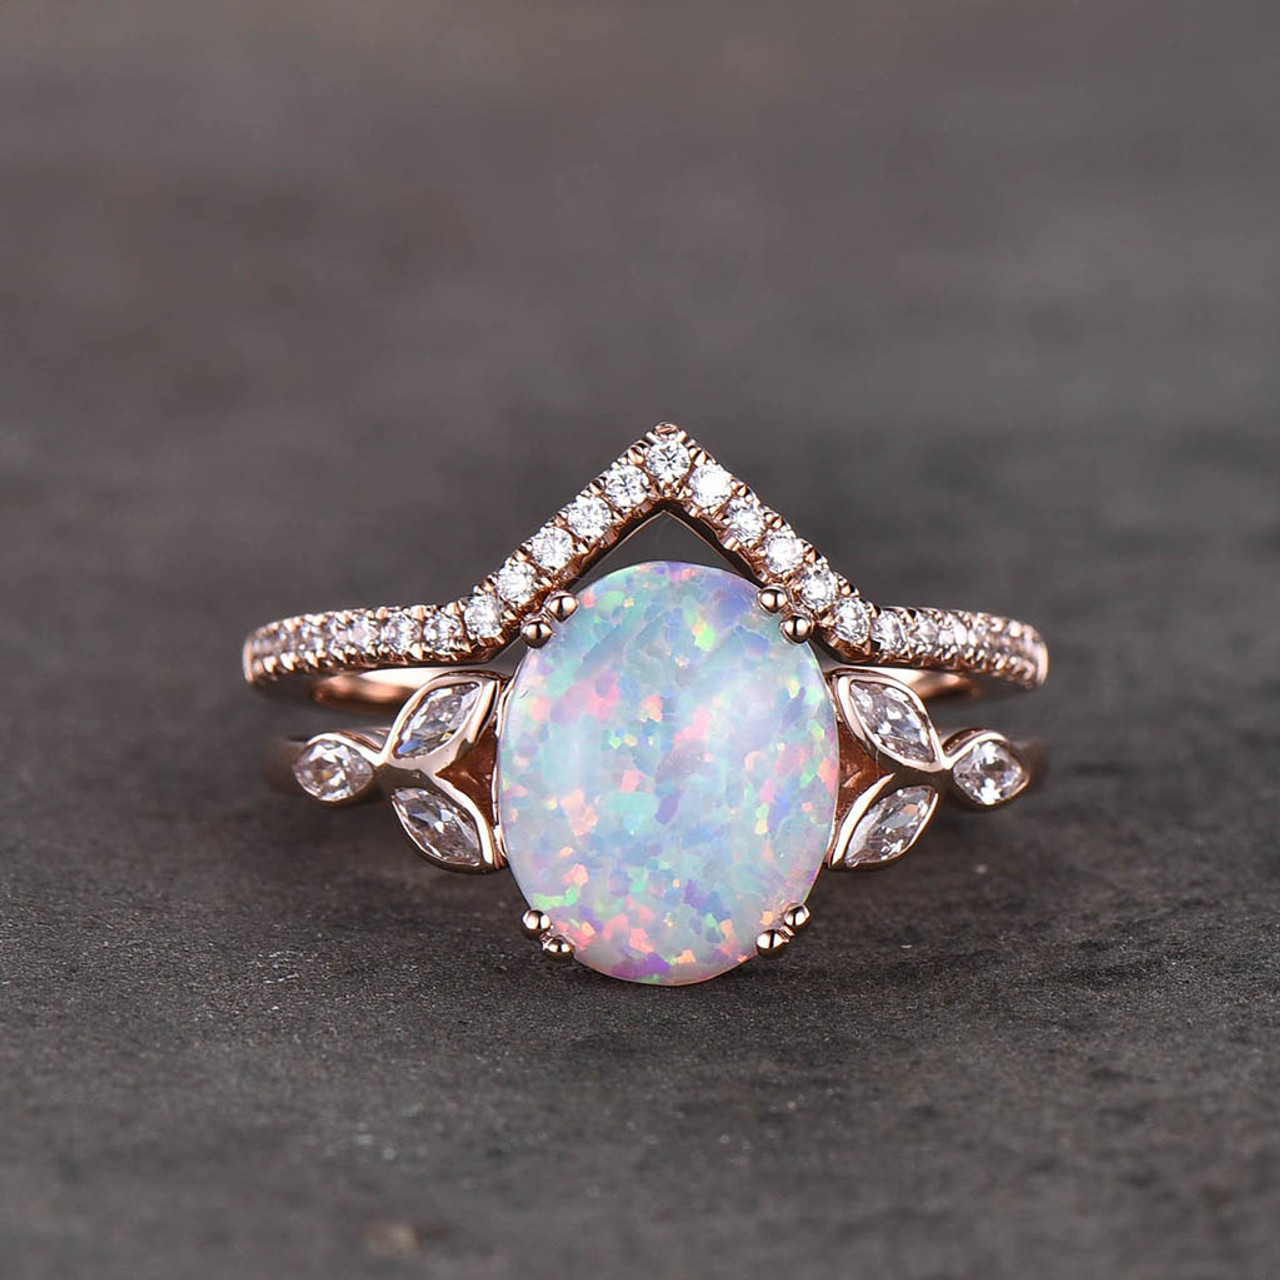 Opal Wedding Ring Set Opal Ring White Fire Opal Floral Engagement Ring Rose  Gold Plated Unique Curve Wedding Band Silver Bridal Ring Set